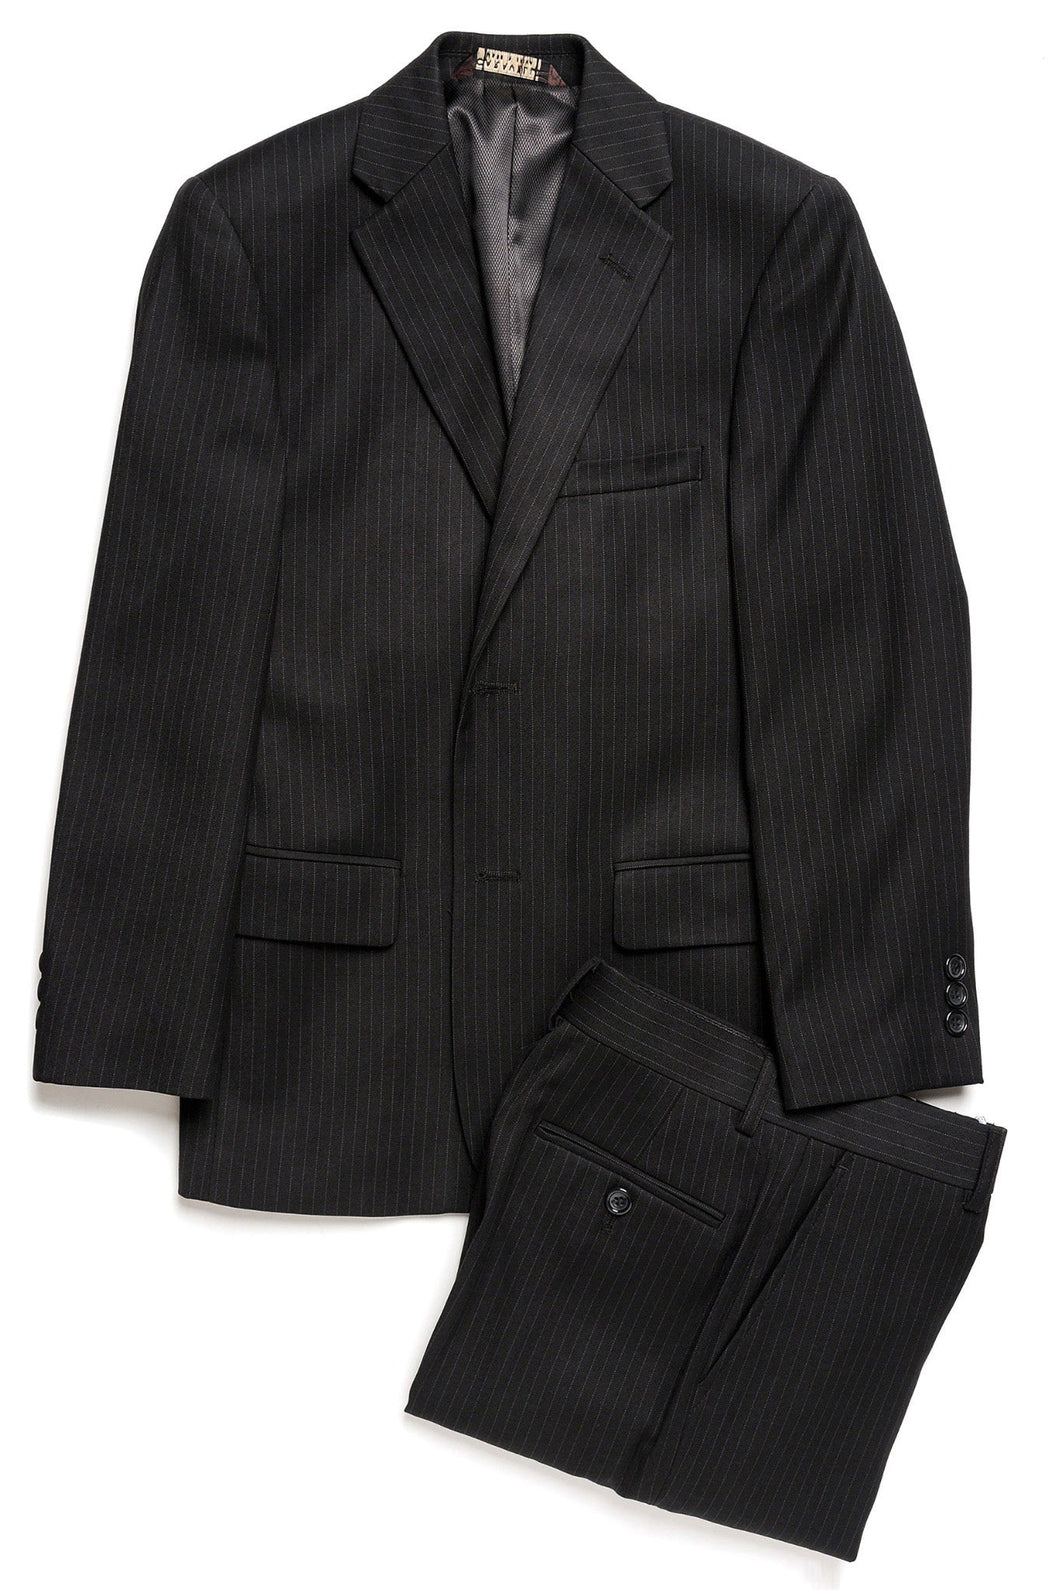 Caravelli Black Tonal Stripe Suit